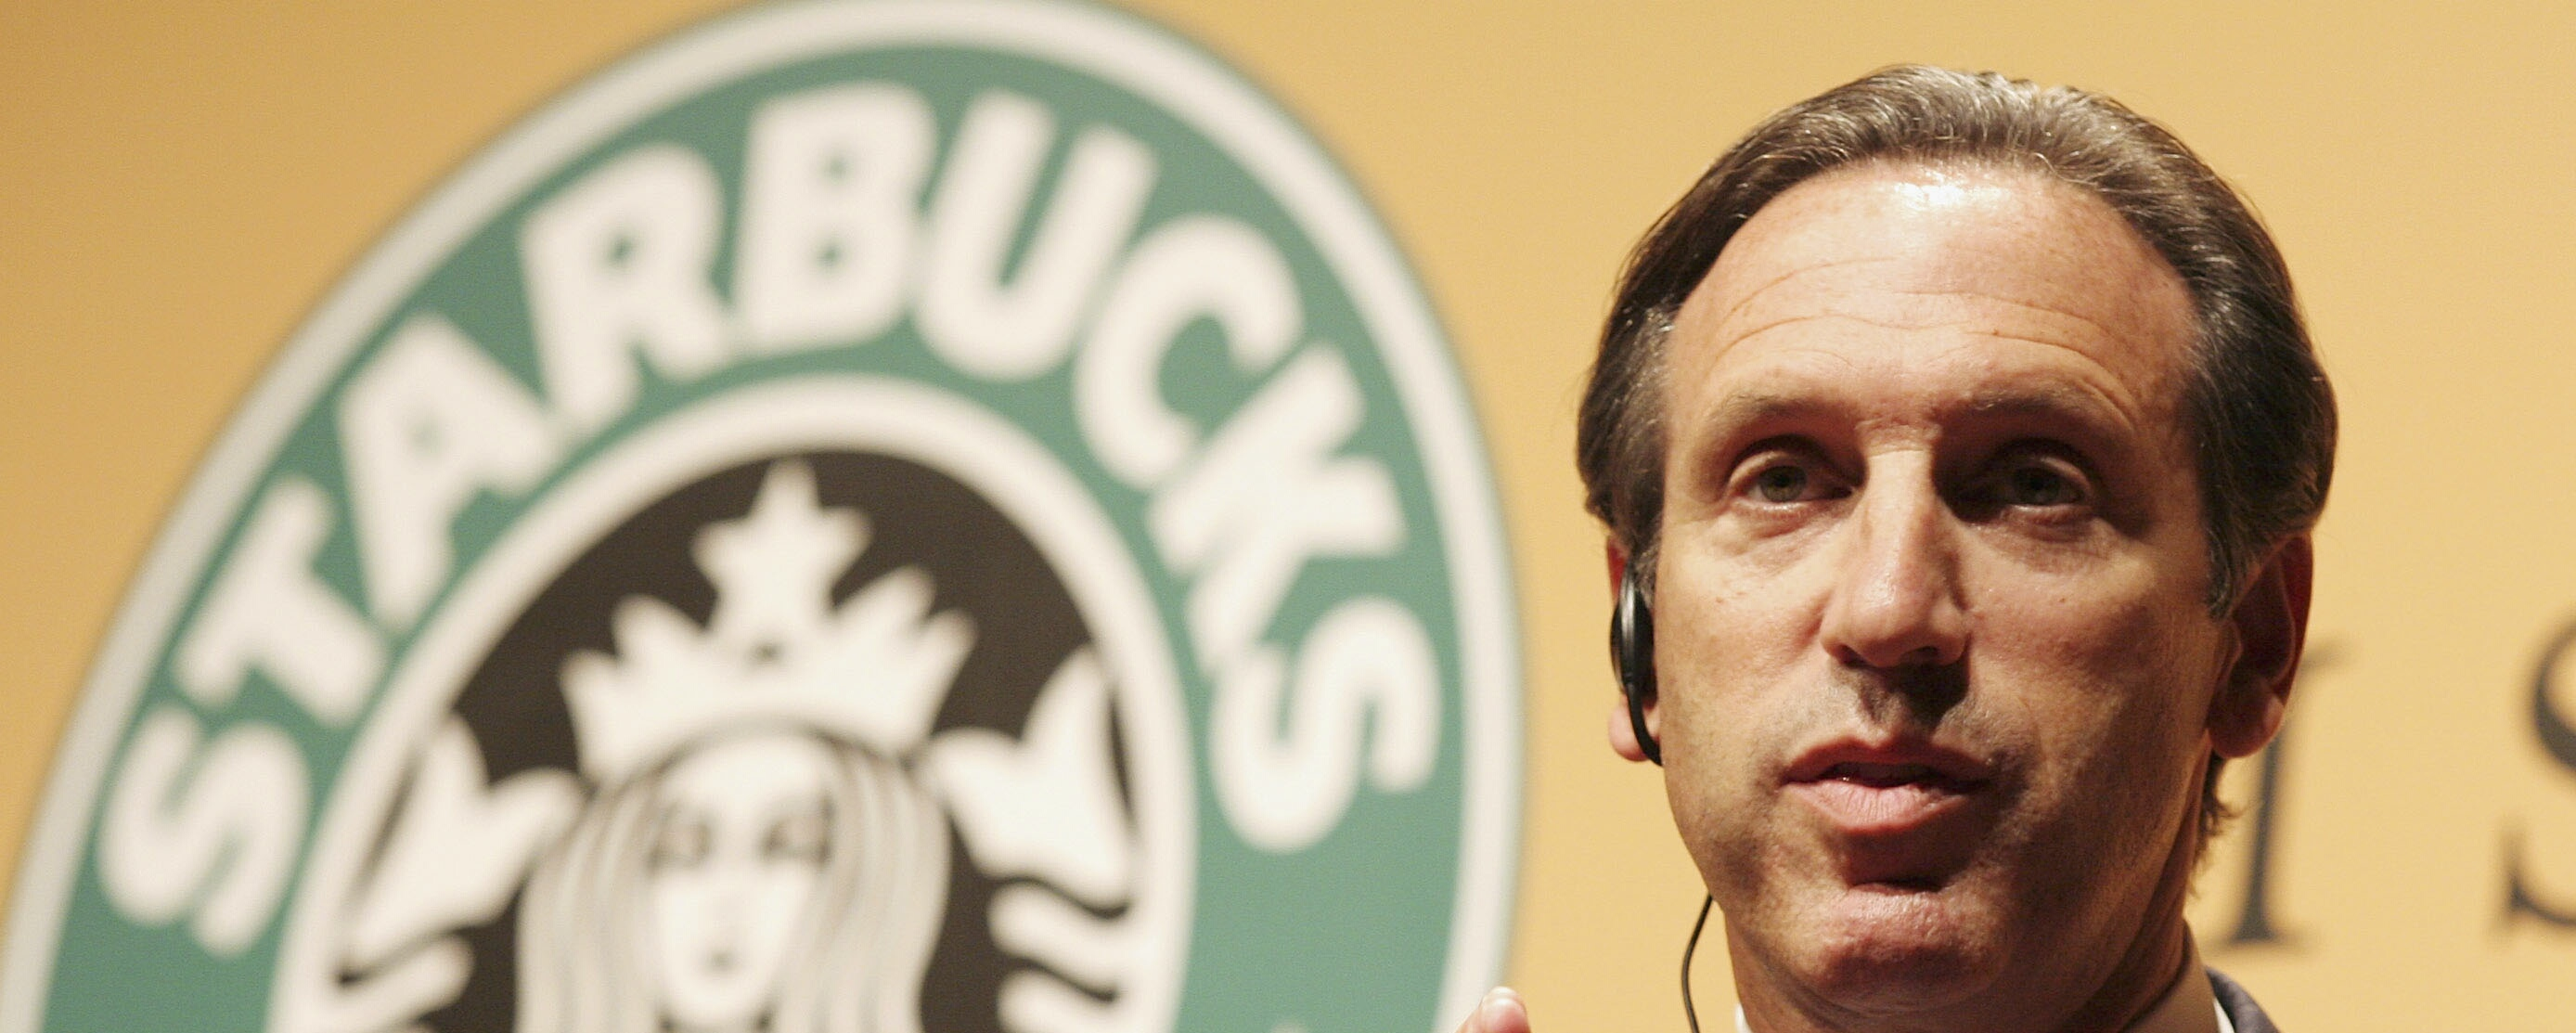 Starbucks founder hears Adventist health message, says chain will go completely decaf